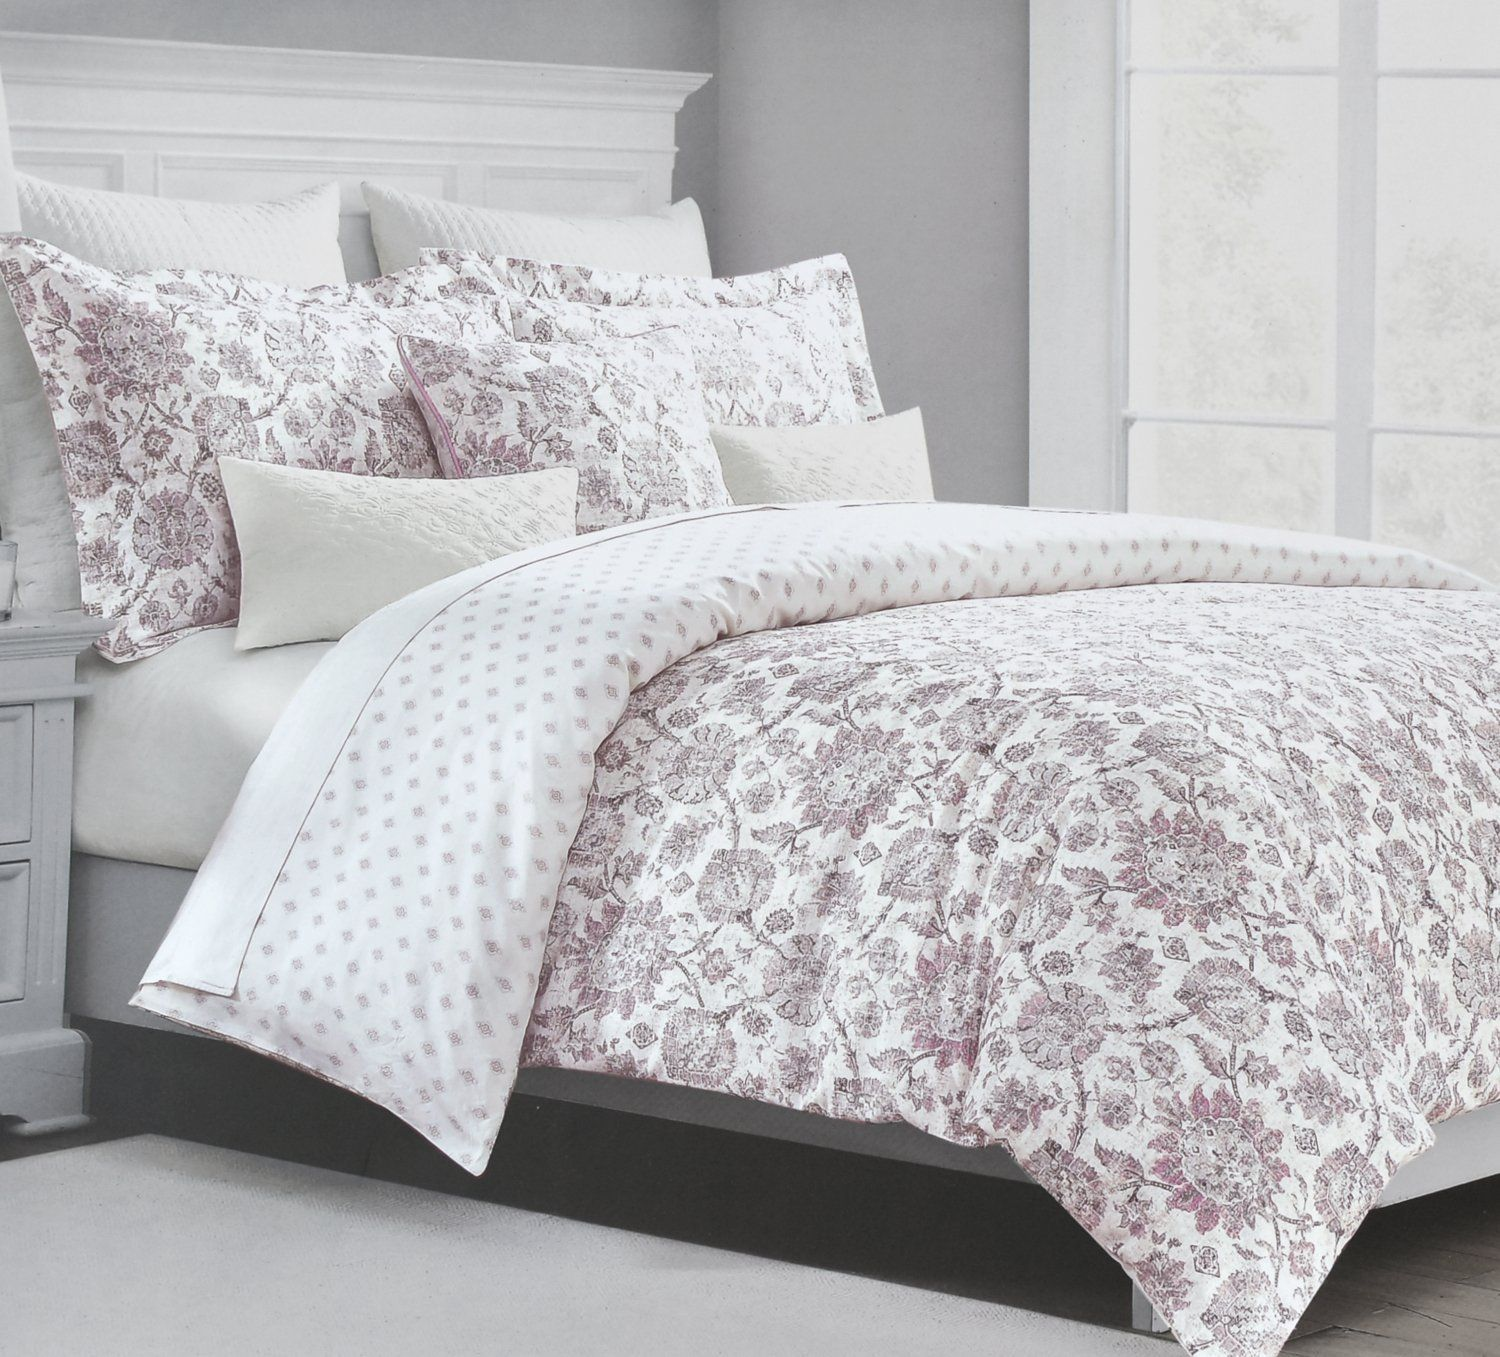 Tahari Home Vintage Damask Ornate Scroll